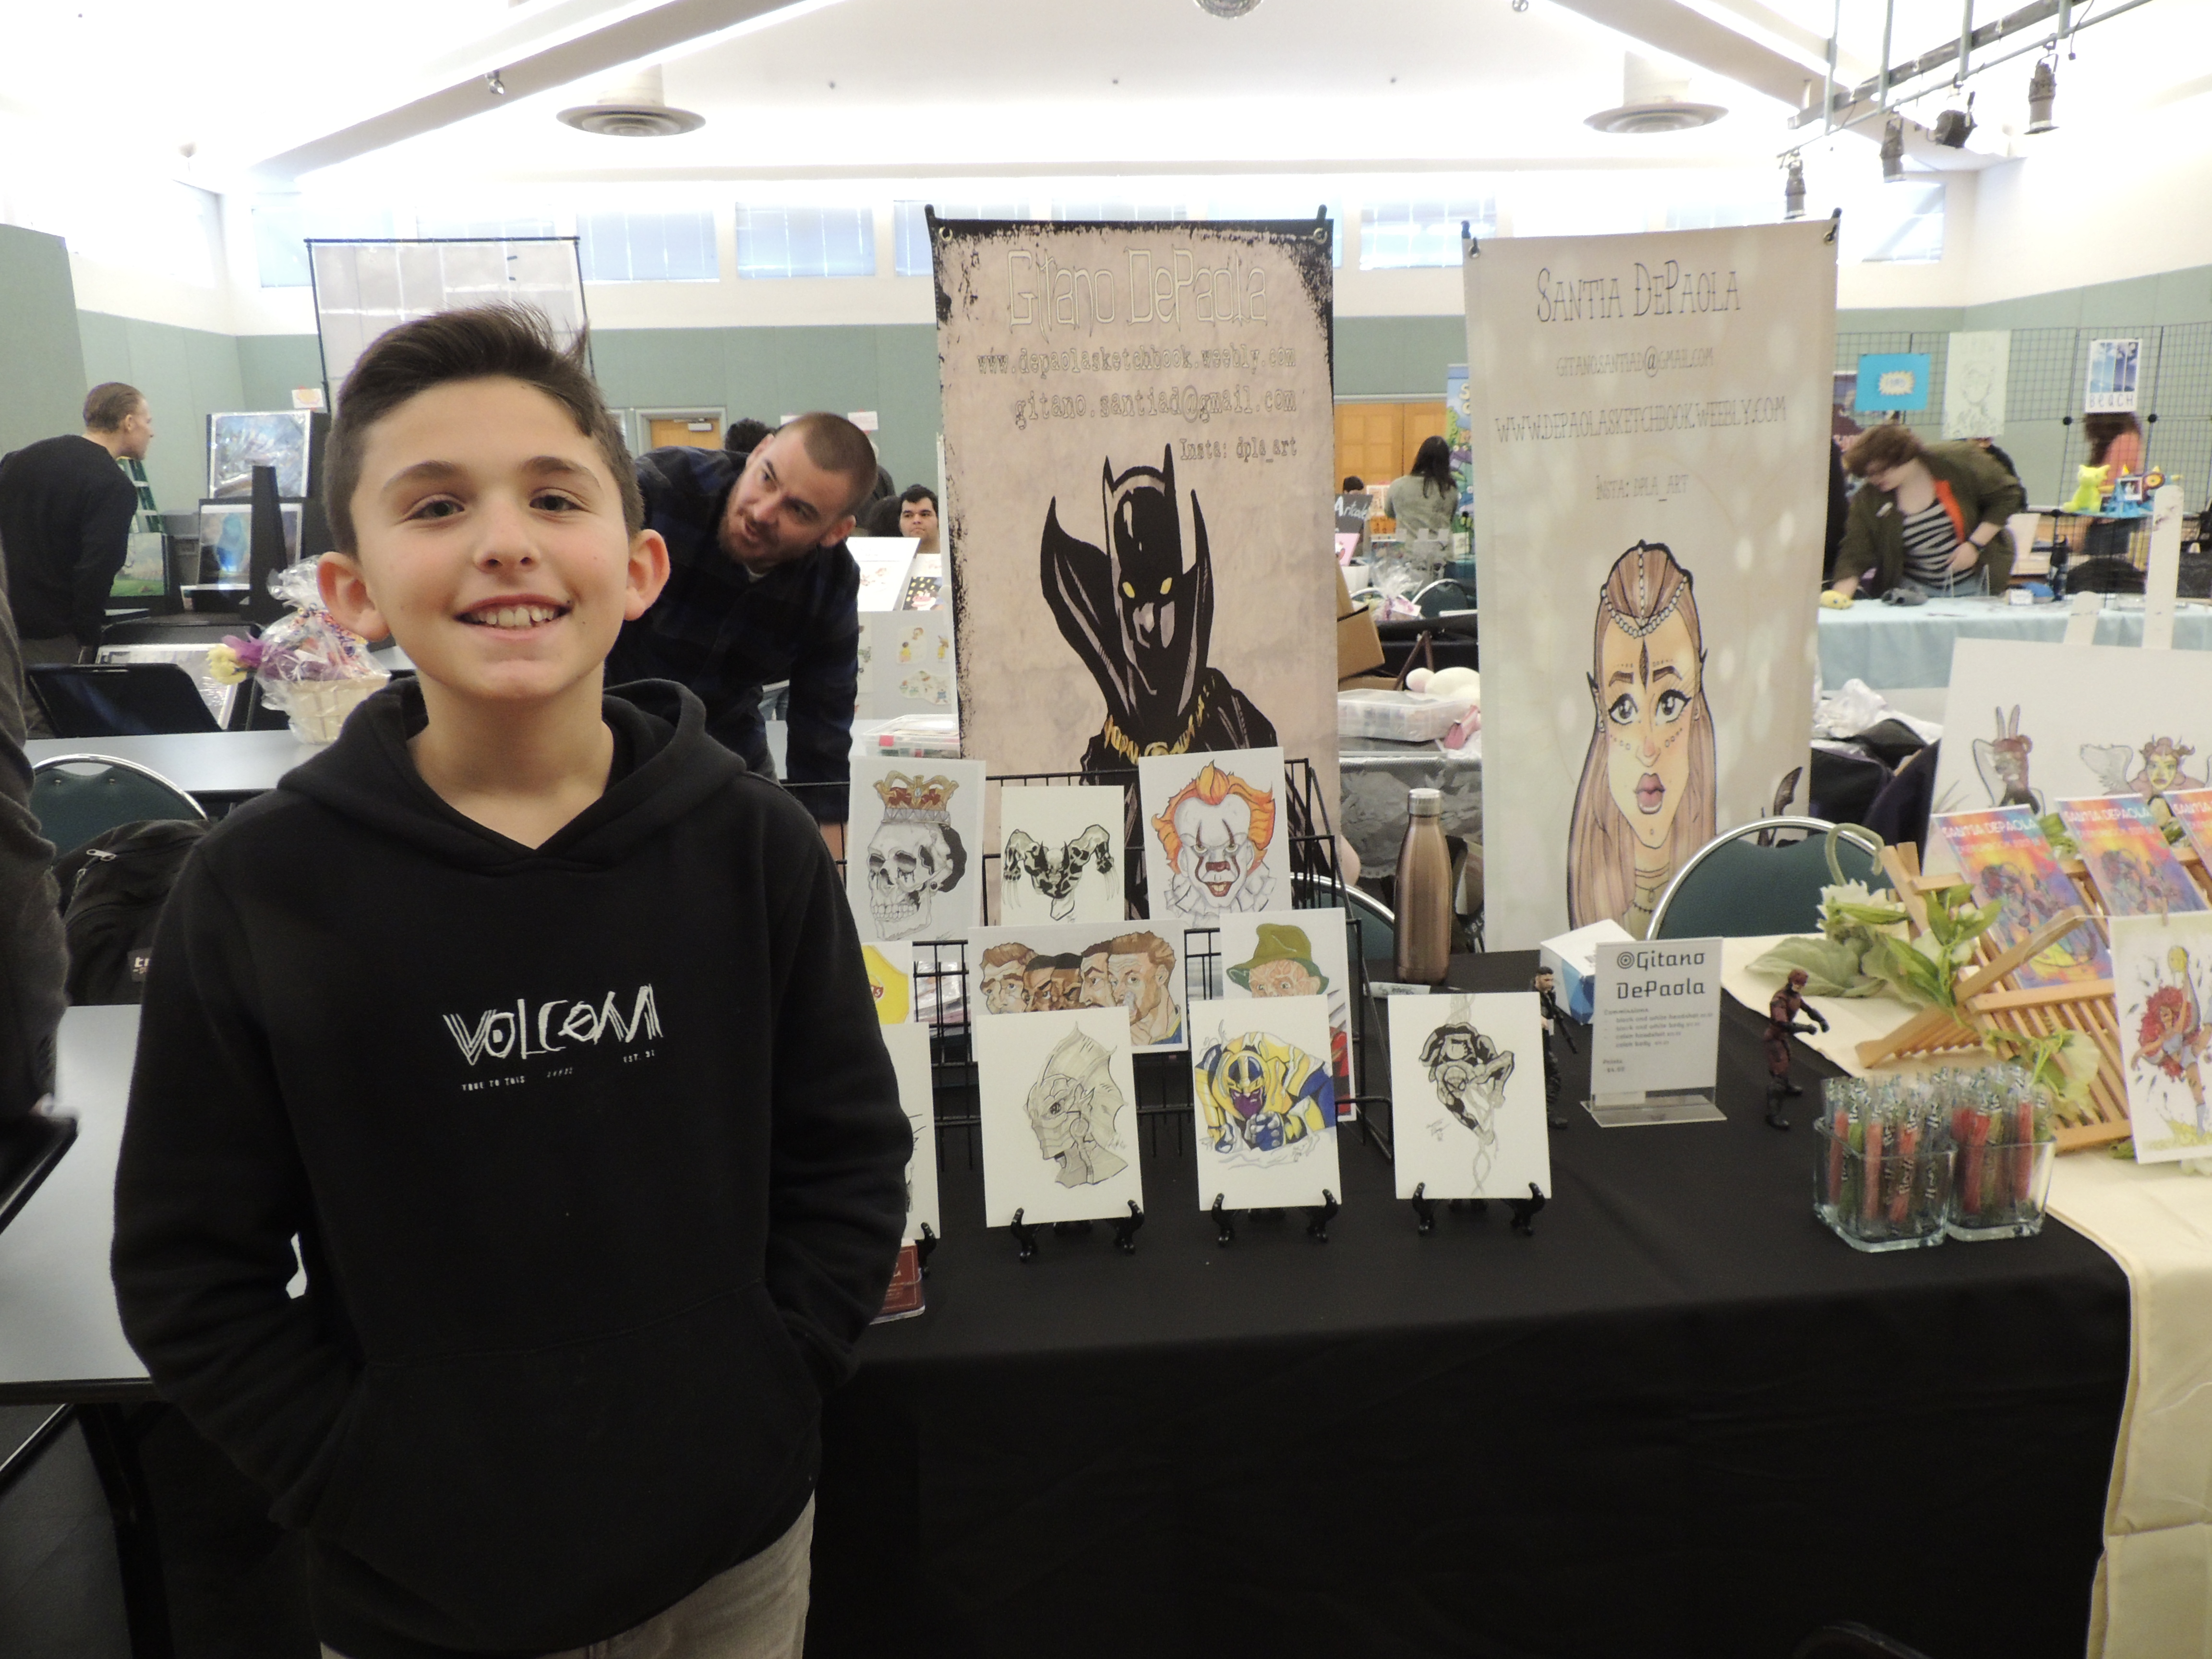 Youth displaying artwork on table